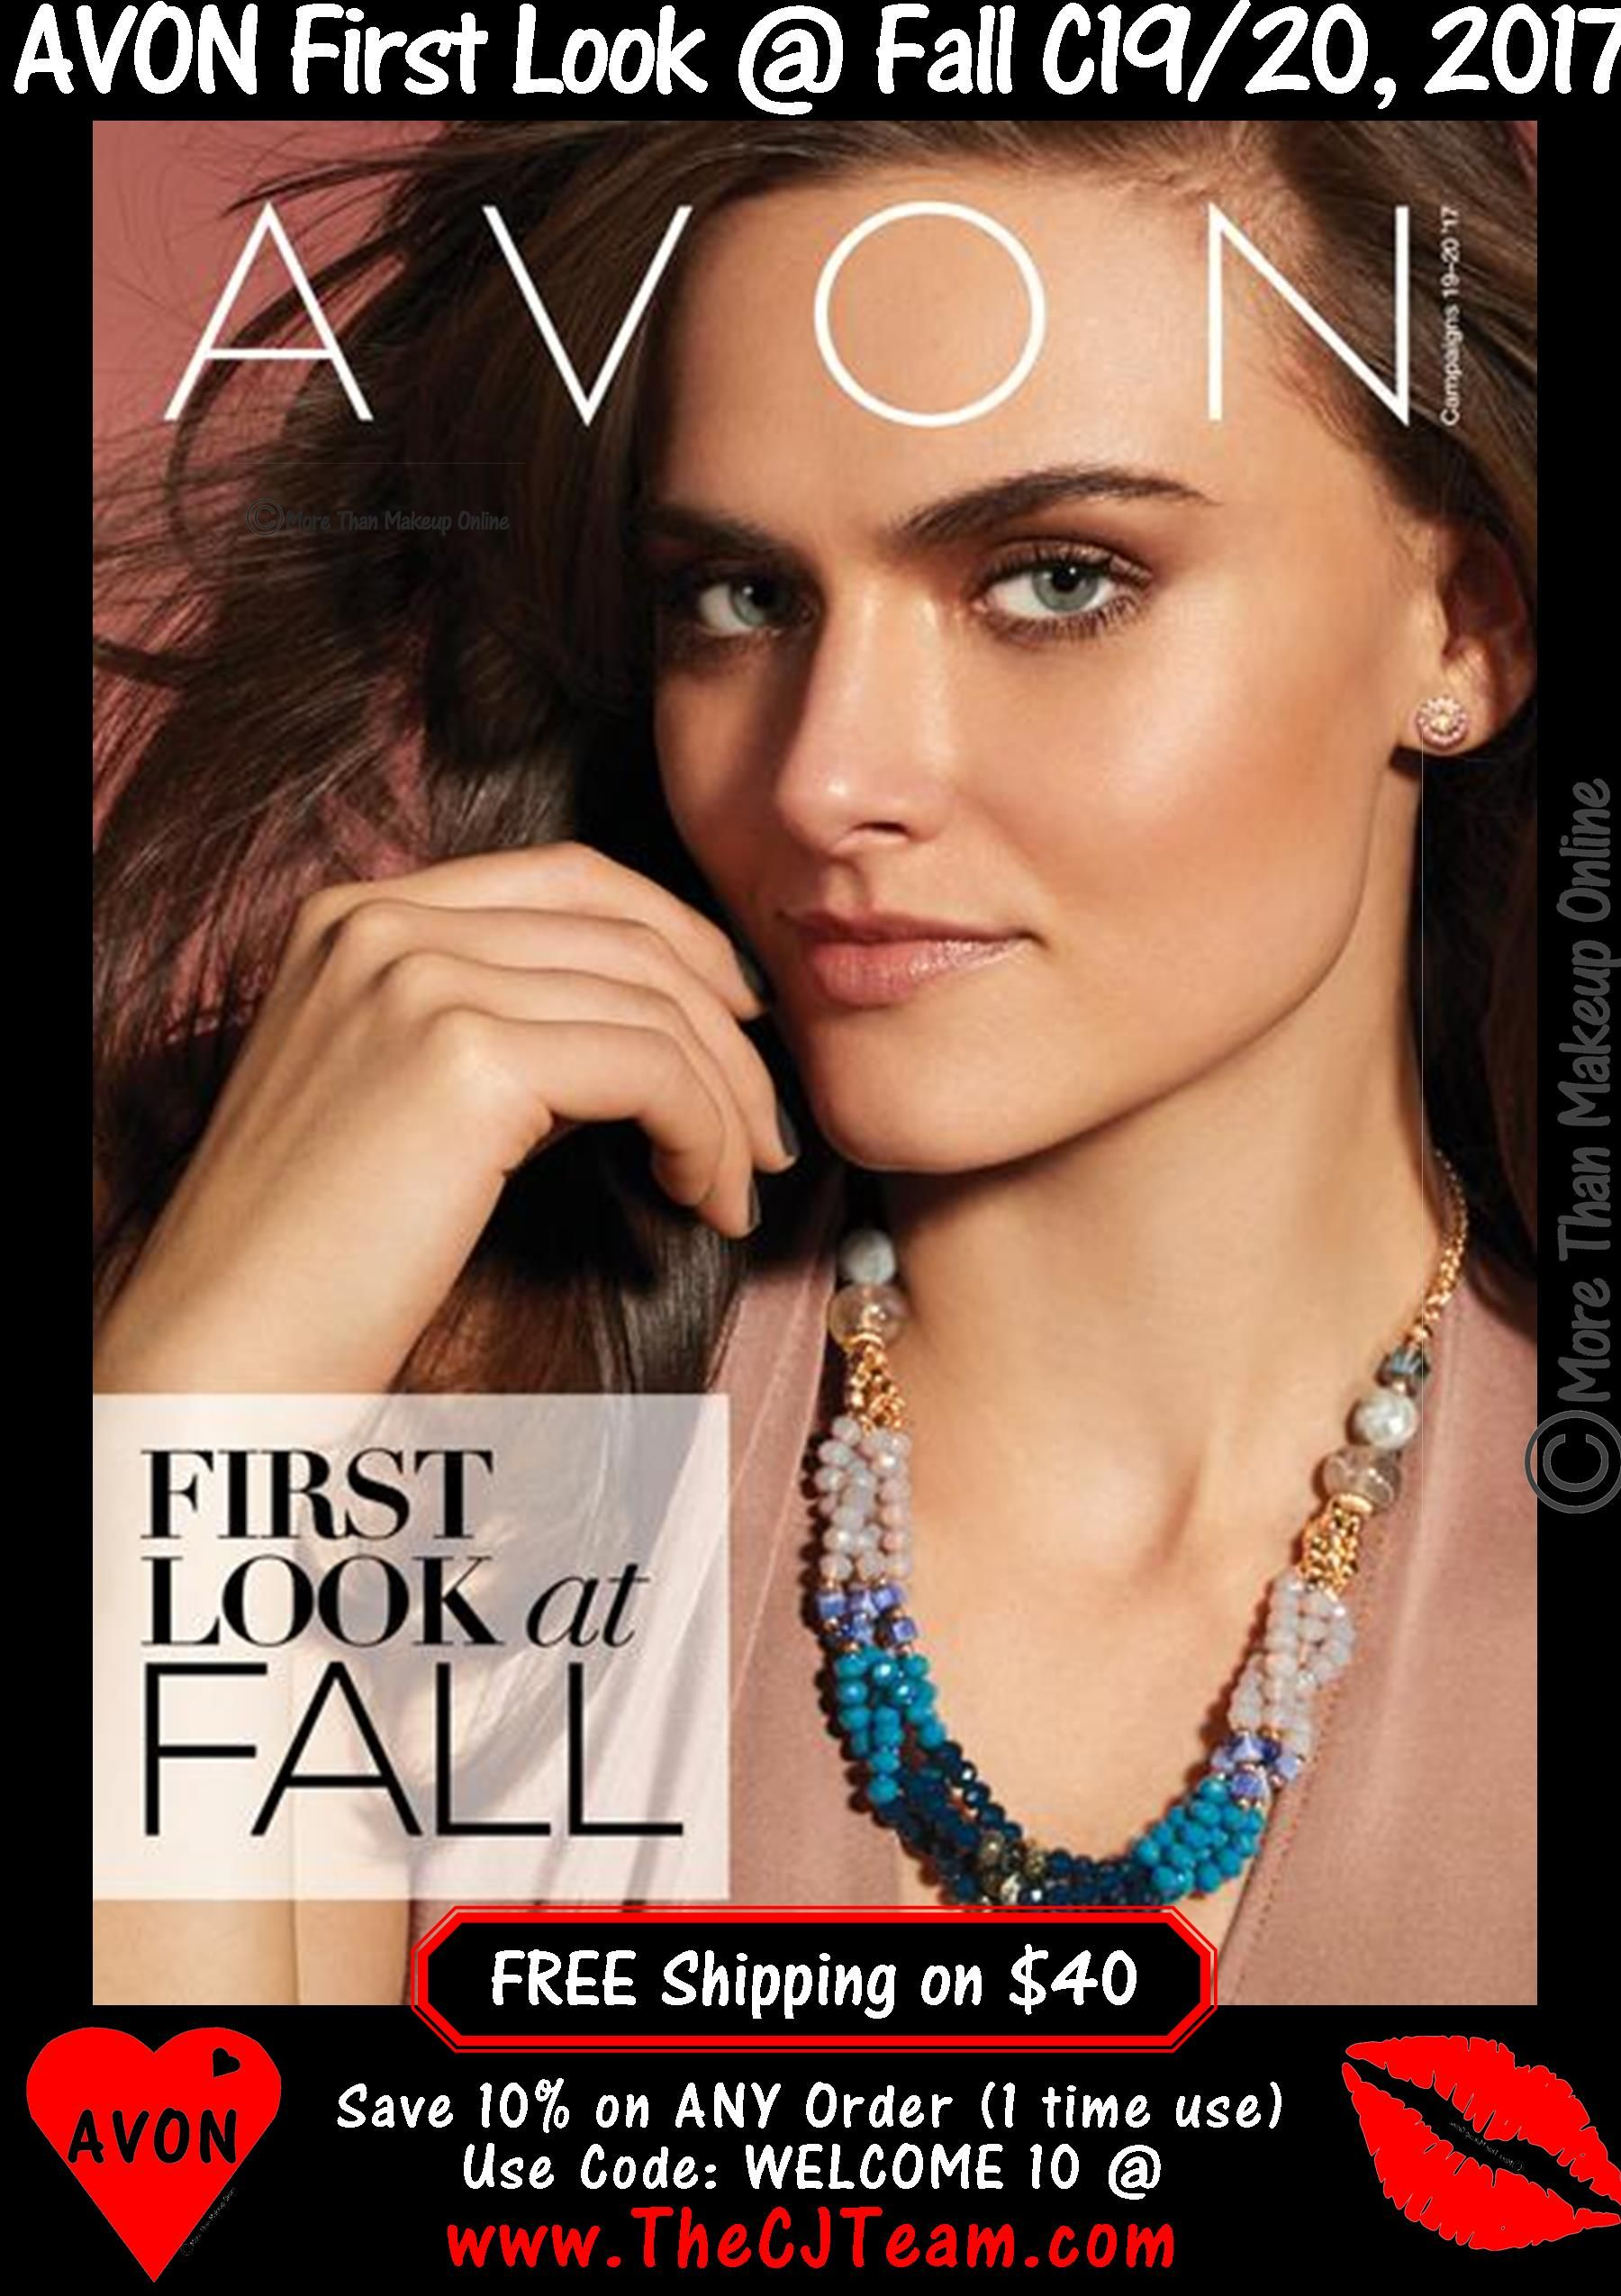 Avon Campaign 19/20, 2017 First Look at Fall Avon Sales